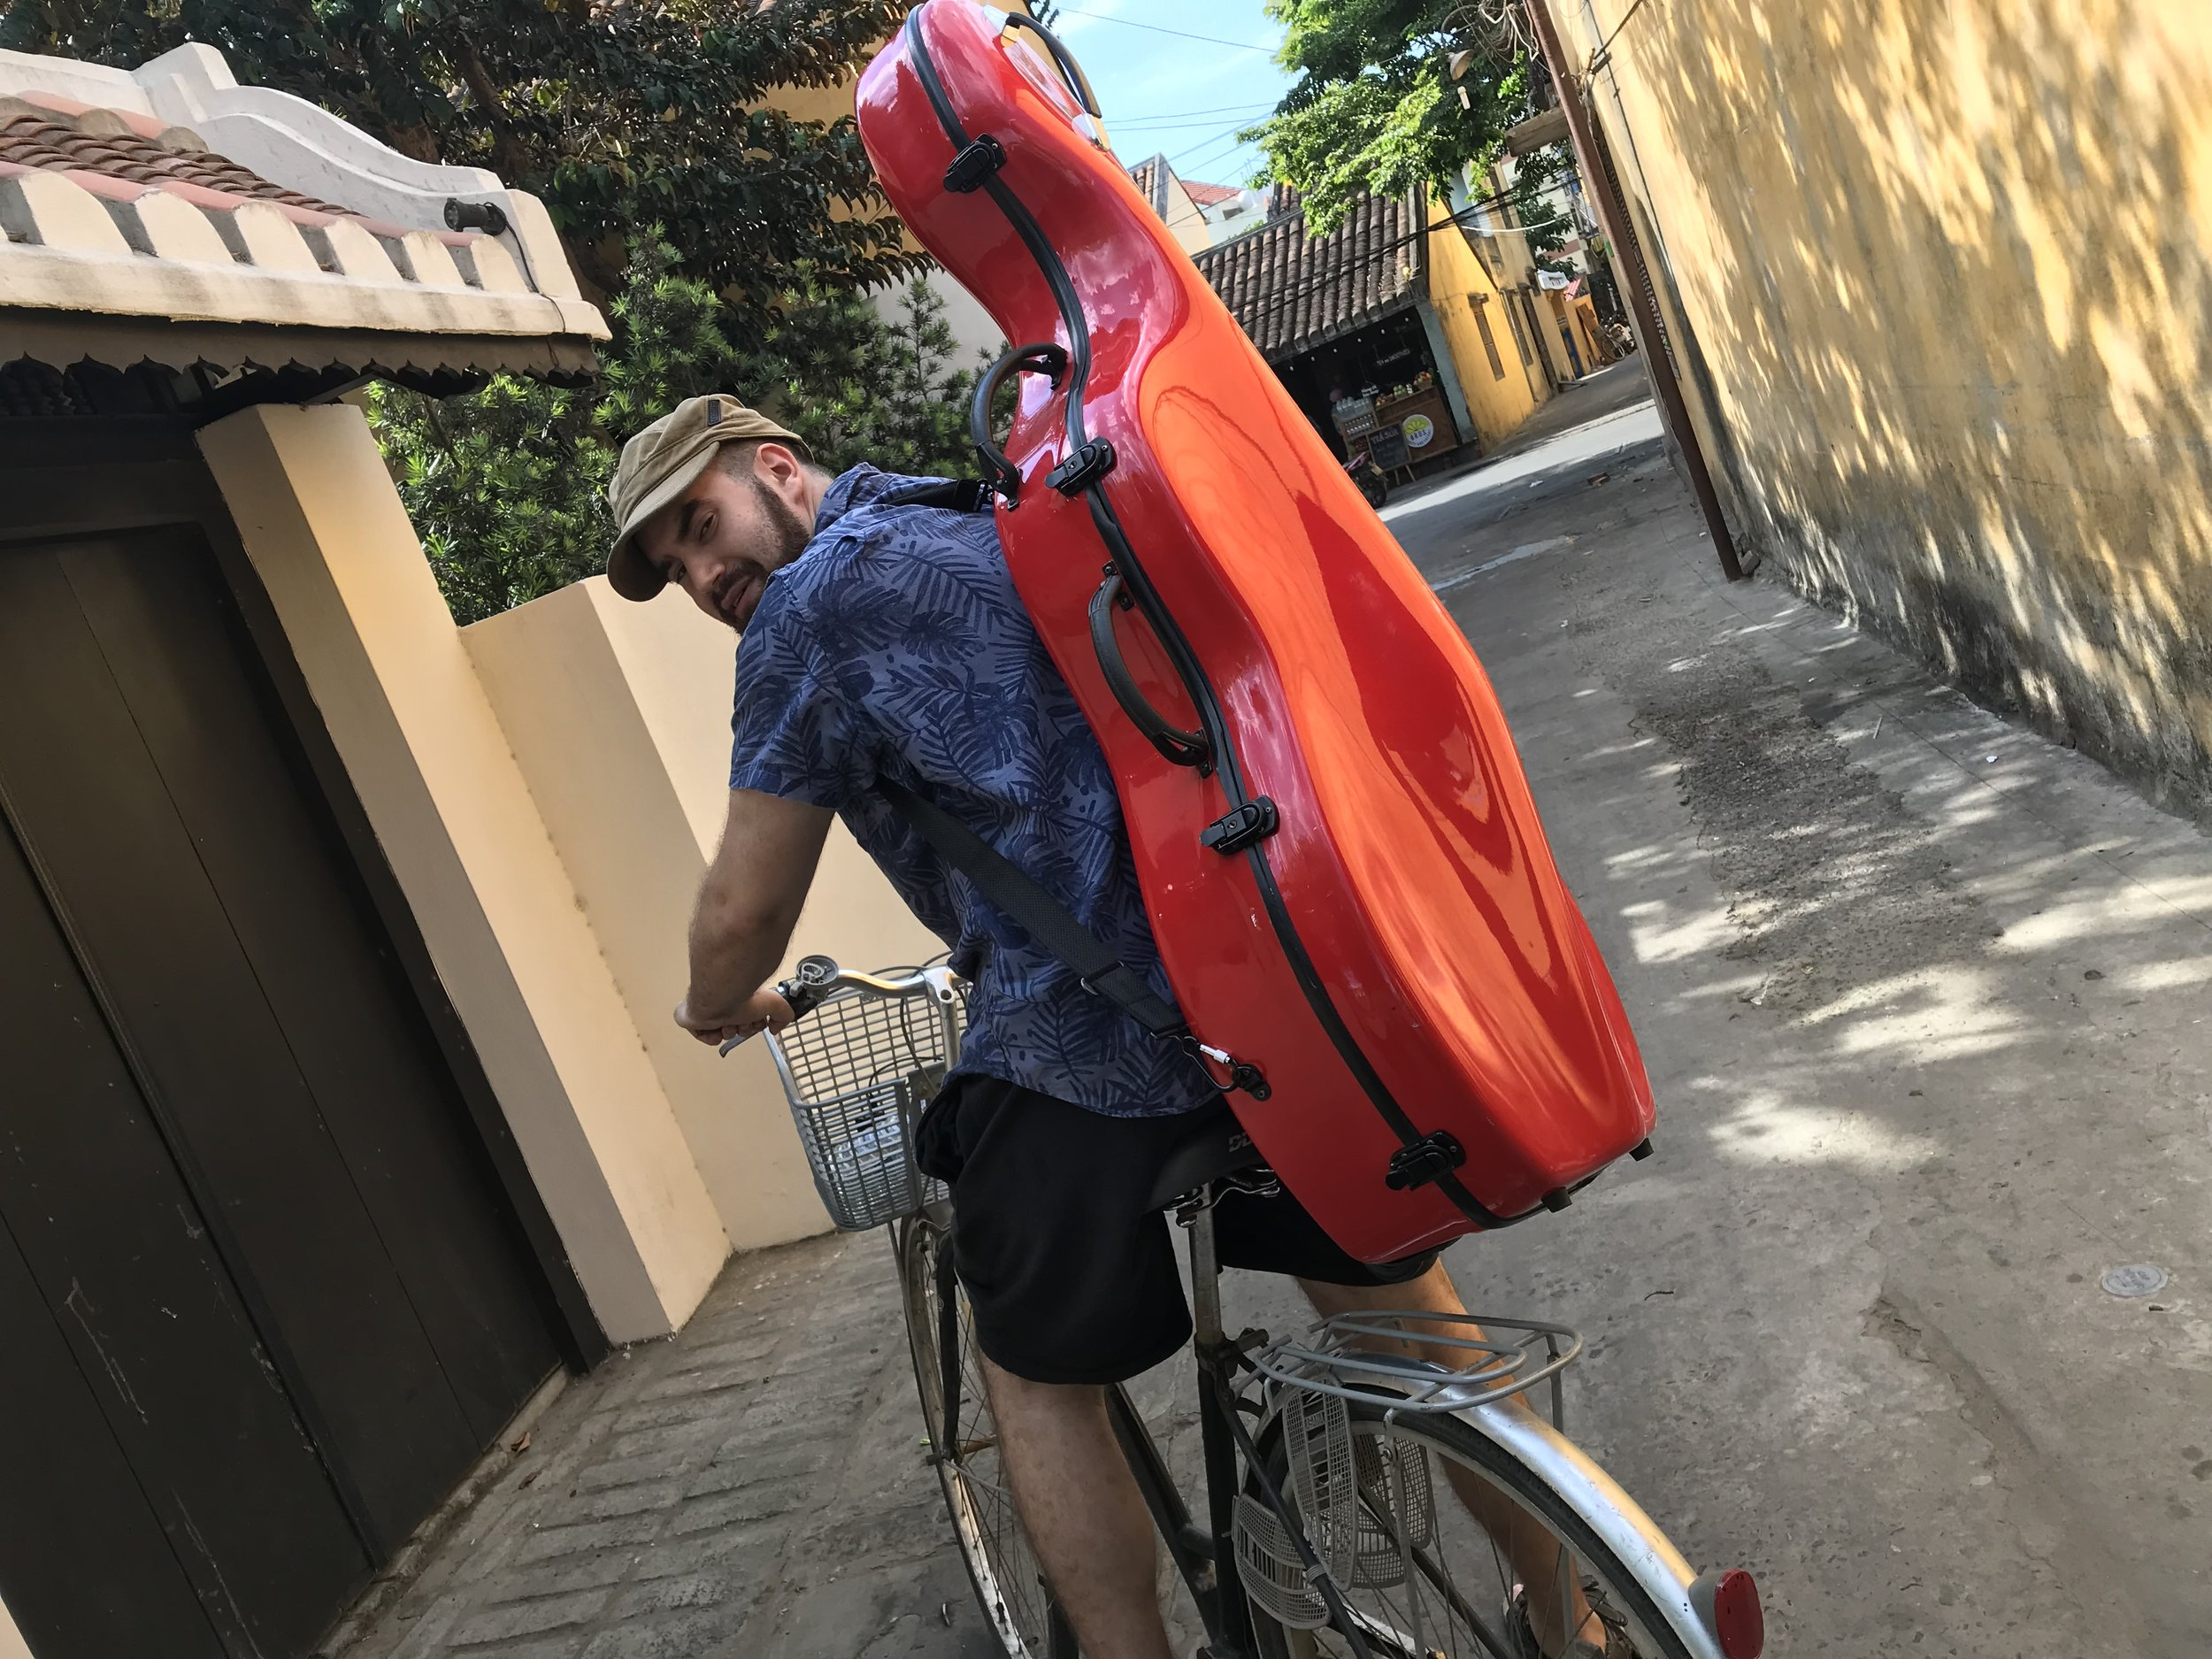 I couldn't believe it myself, but I'm actually able to ride the bike with the cello on my back. I have fully assimilated into Vietnamese culture.